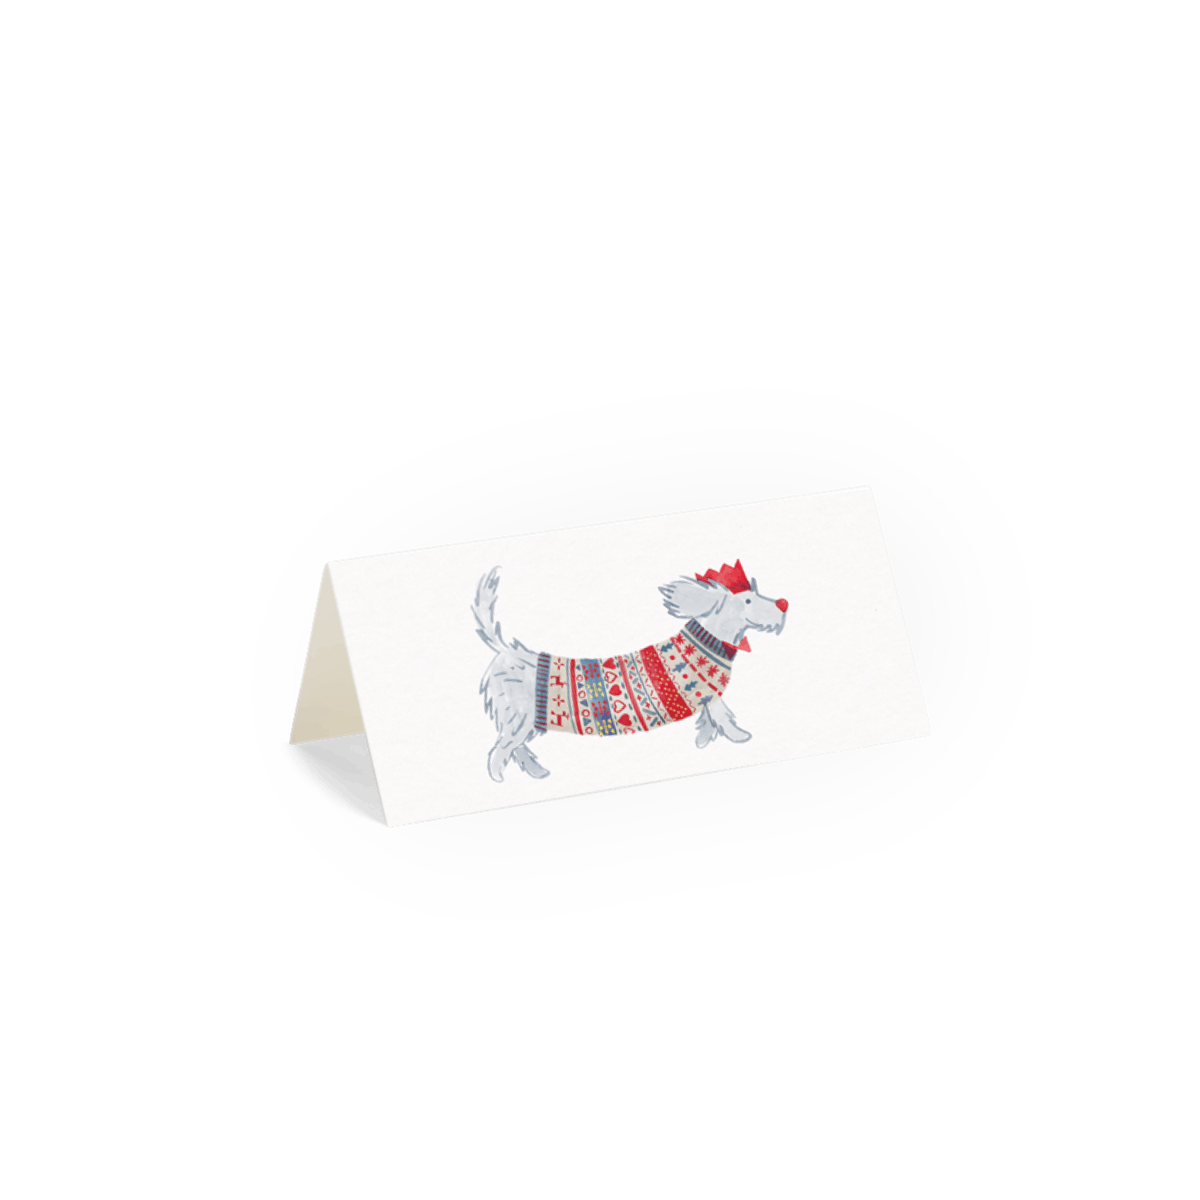 Https%3a%2f%2fwww.papier.com%2fproduct image%2f82175%2f15%2fchristmas dog 19843 back 1562071650.png?ixlib=rb 1.1